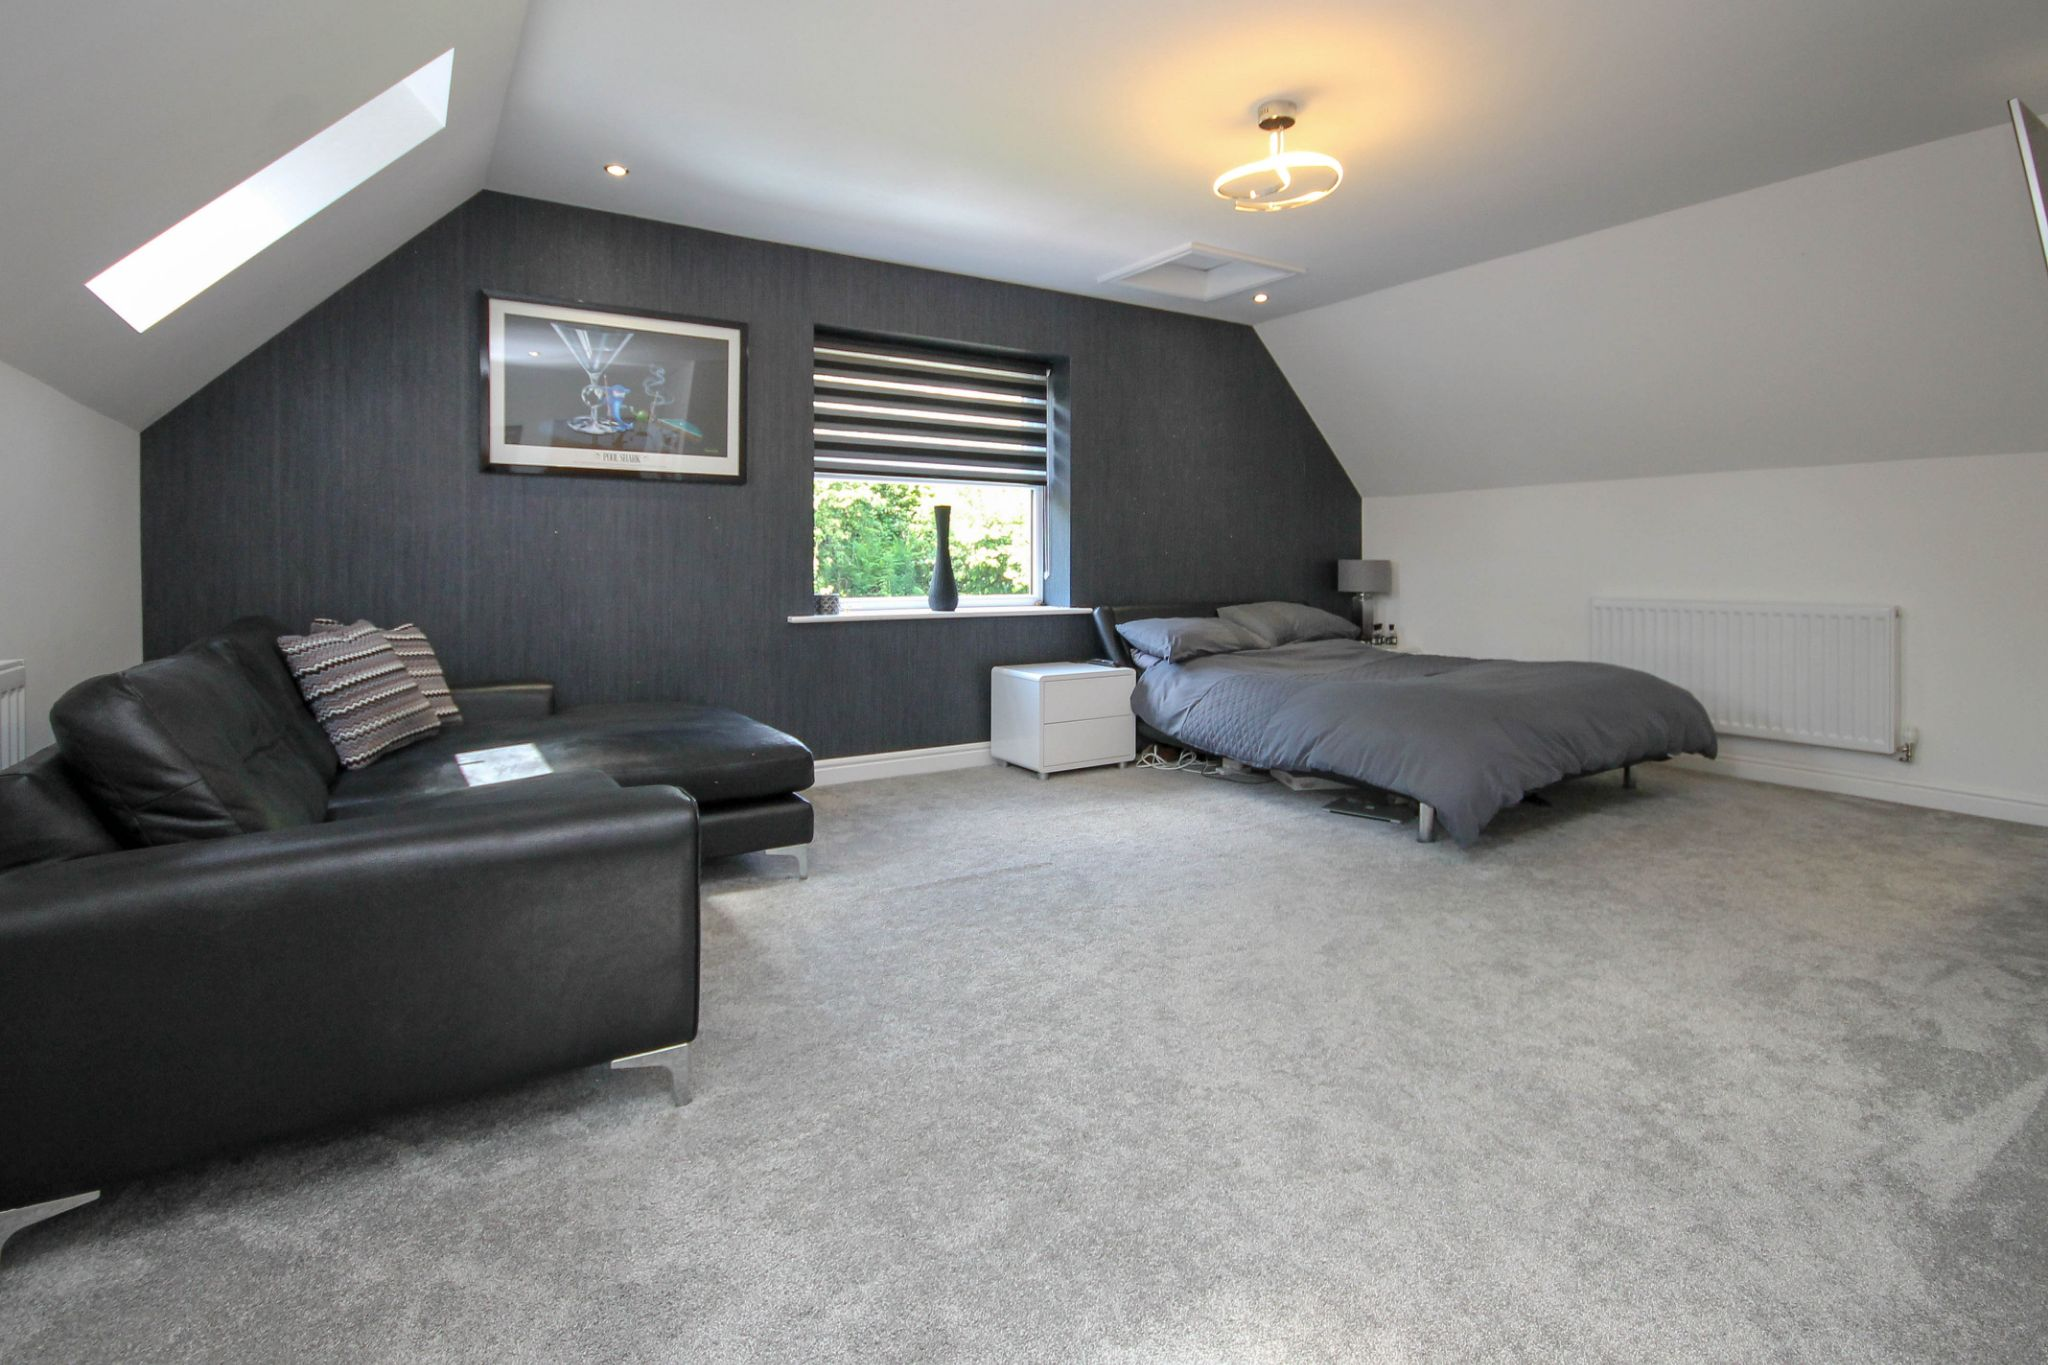 5 bedroom detached house SSTC in Bolton - Photograph 32